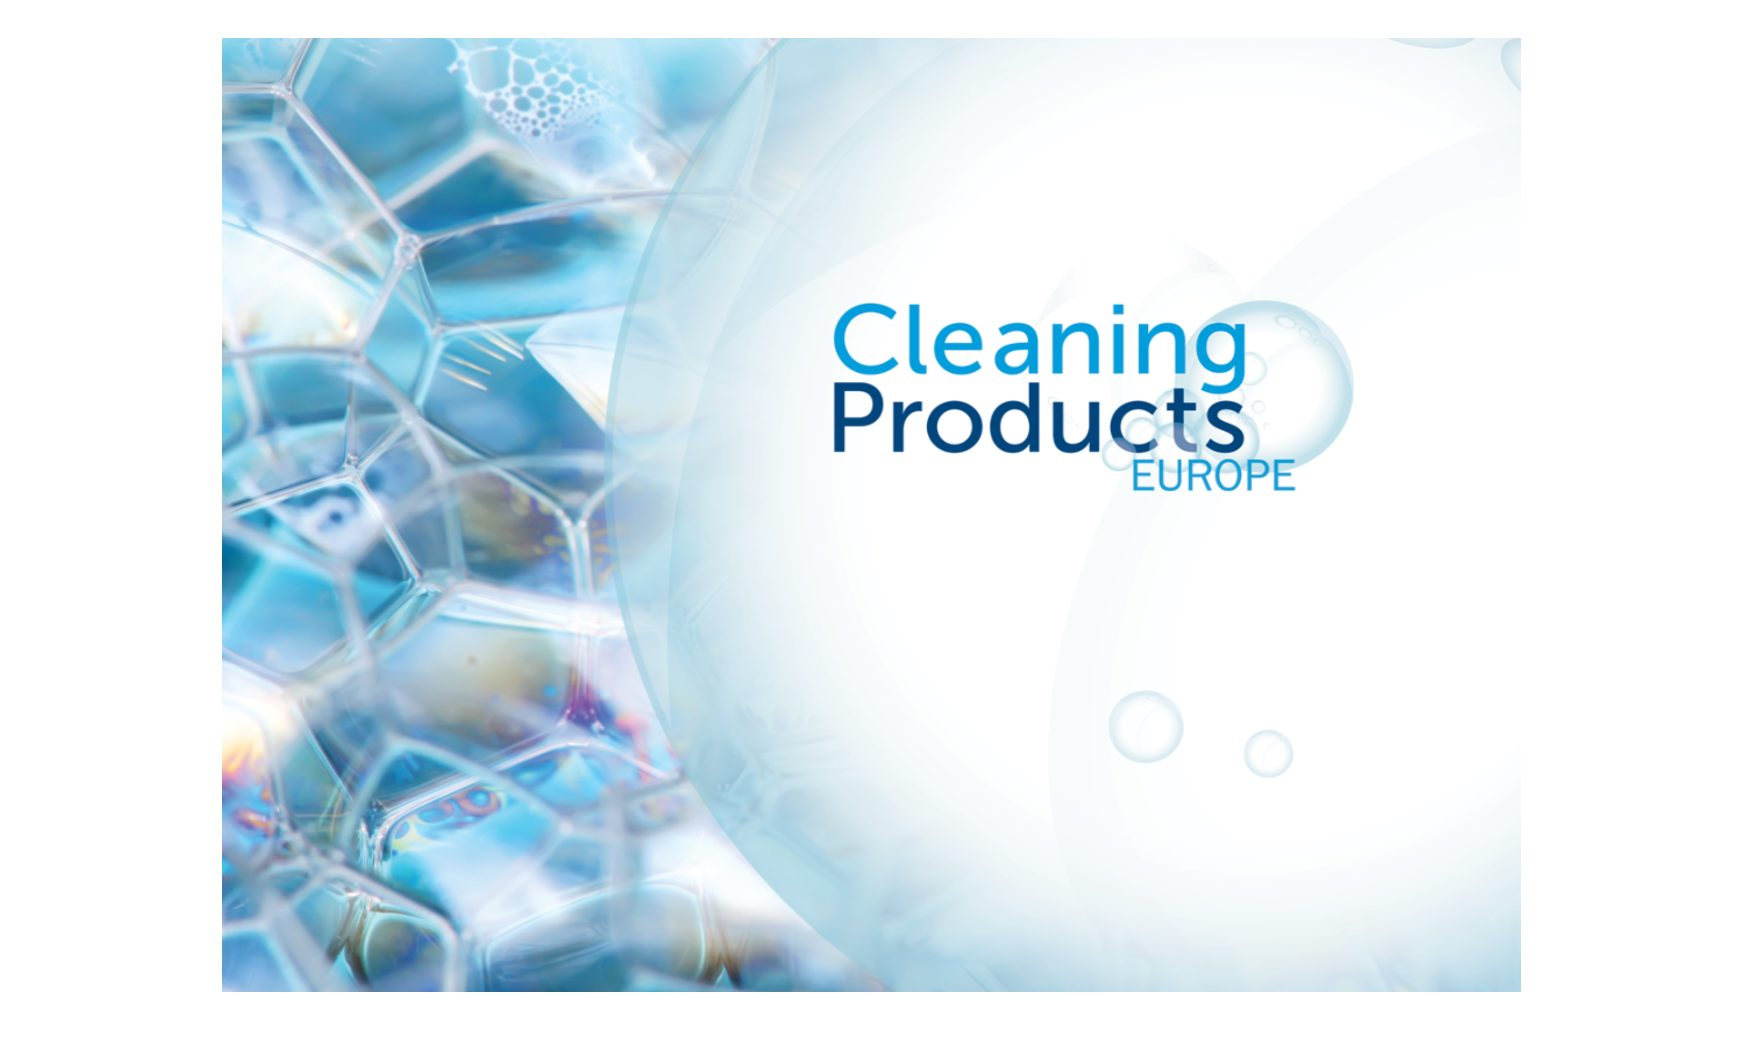 A Date for your Diary – Cleaning Products Europe 2021